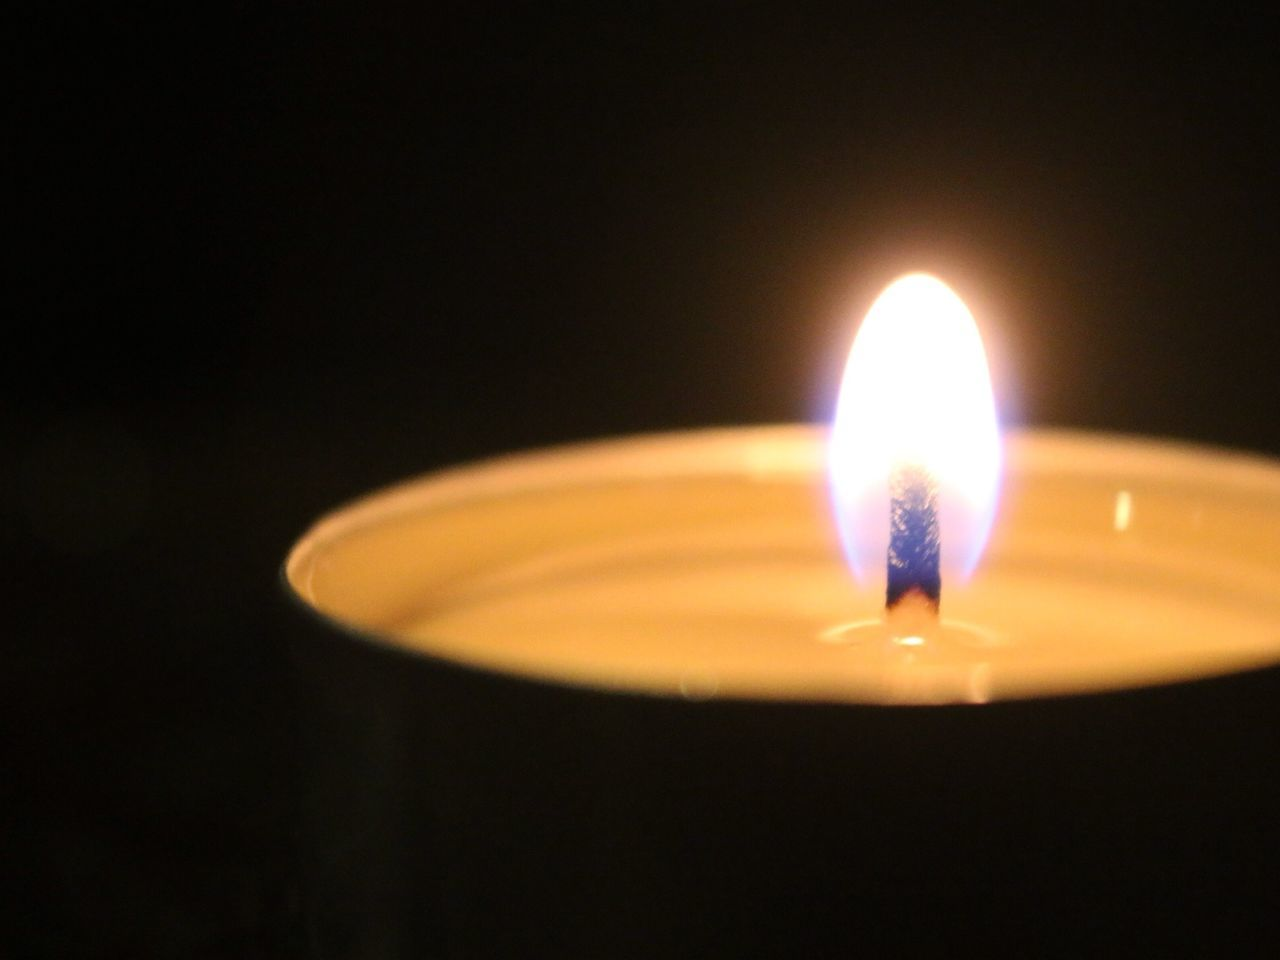 Close up image of a candle